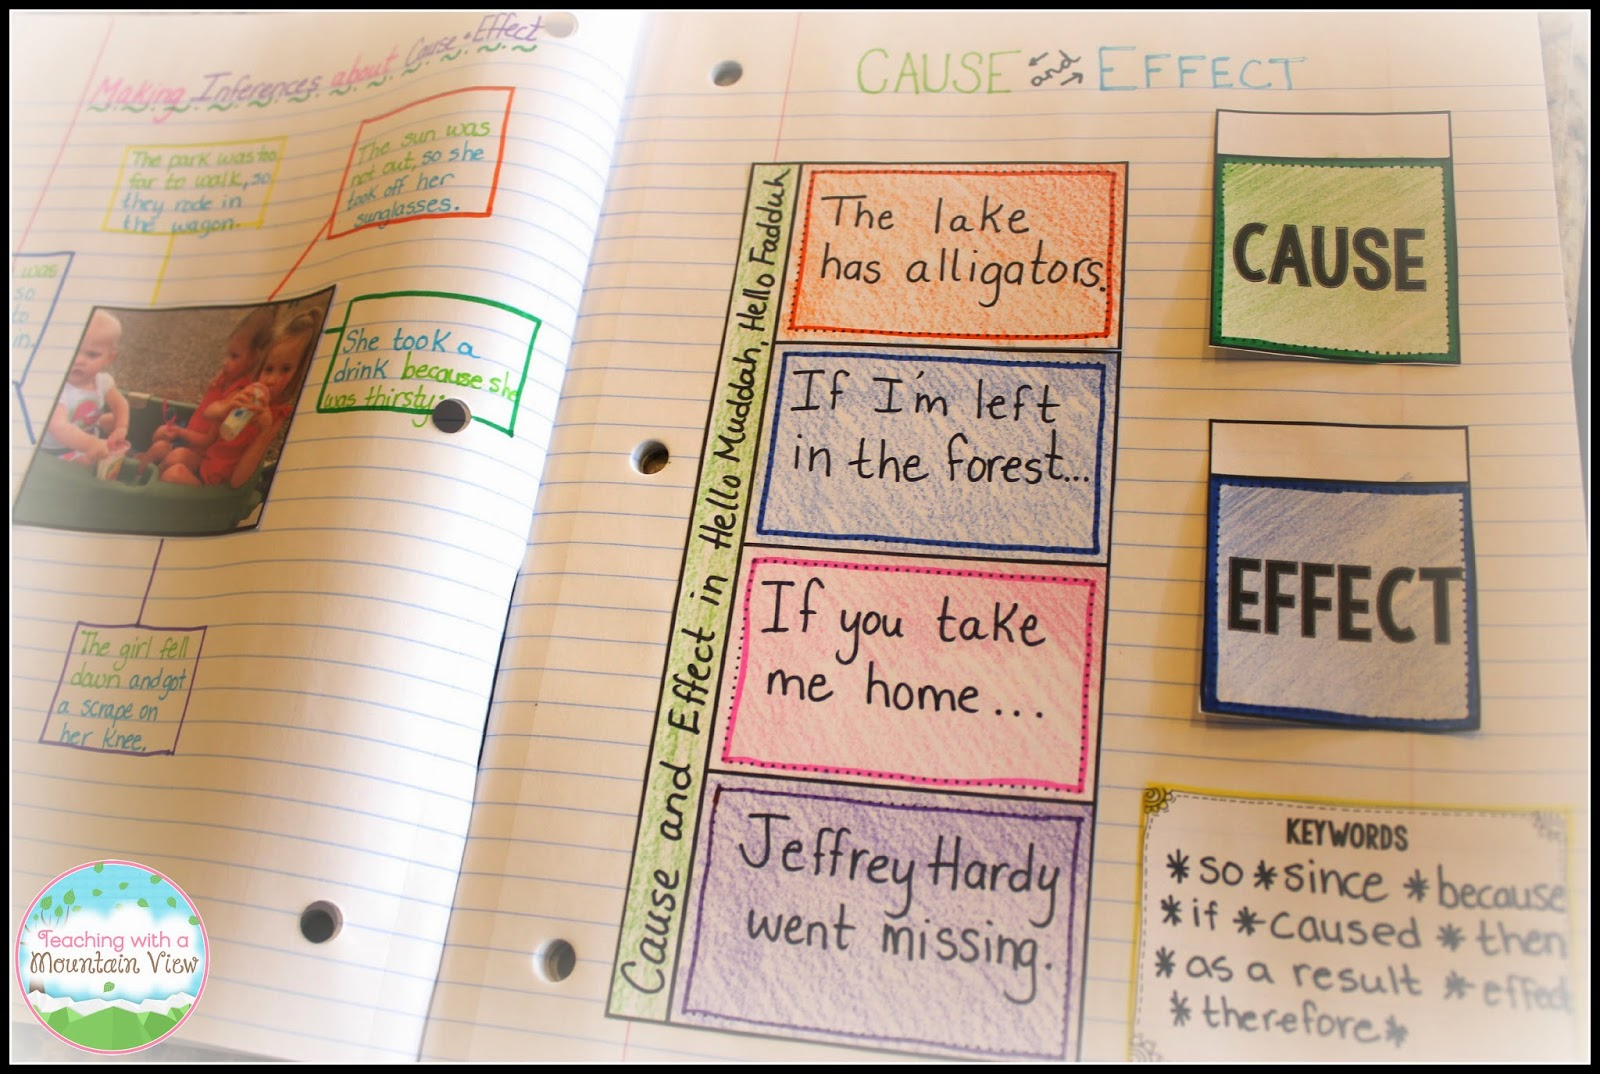 Tips for Writing a Cause and Effect Essay: The Basics from Start to Finish